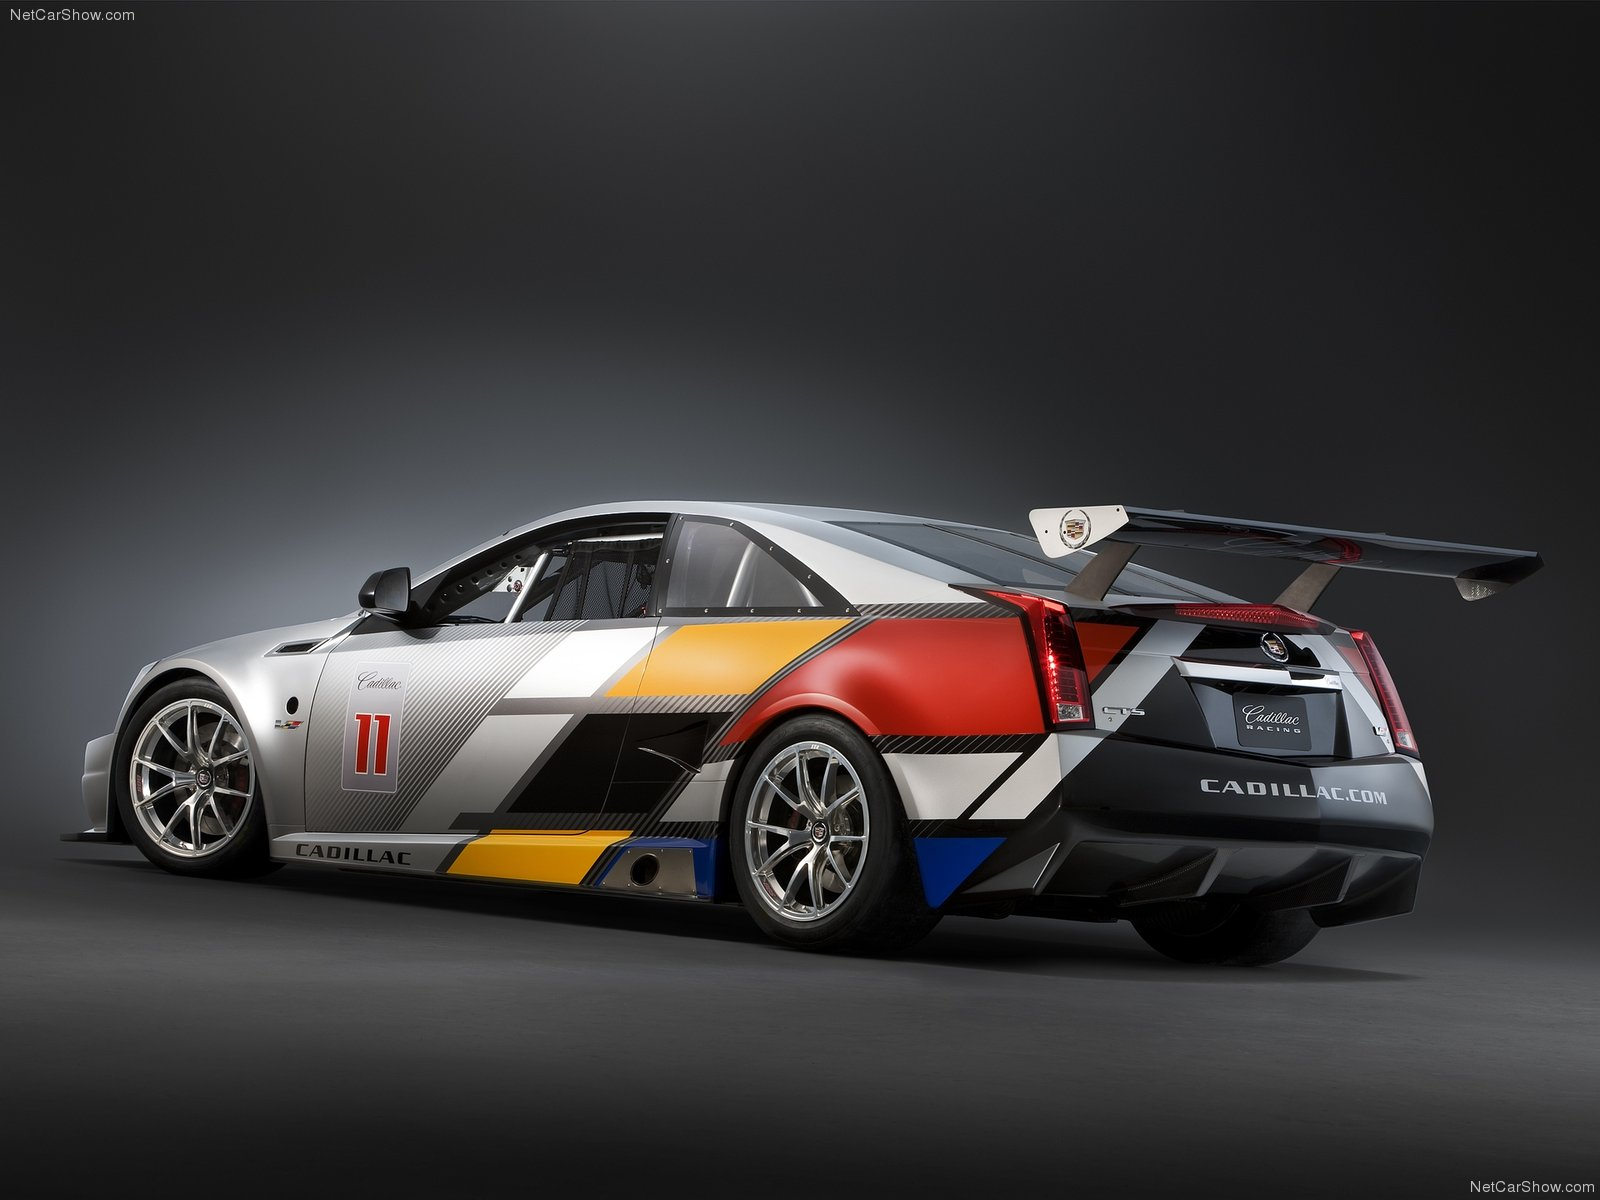 Cadillac CTS-V Coupe Race Car photo 77654